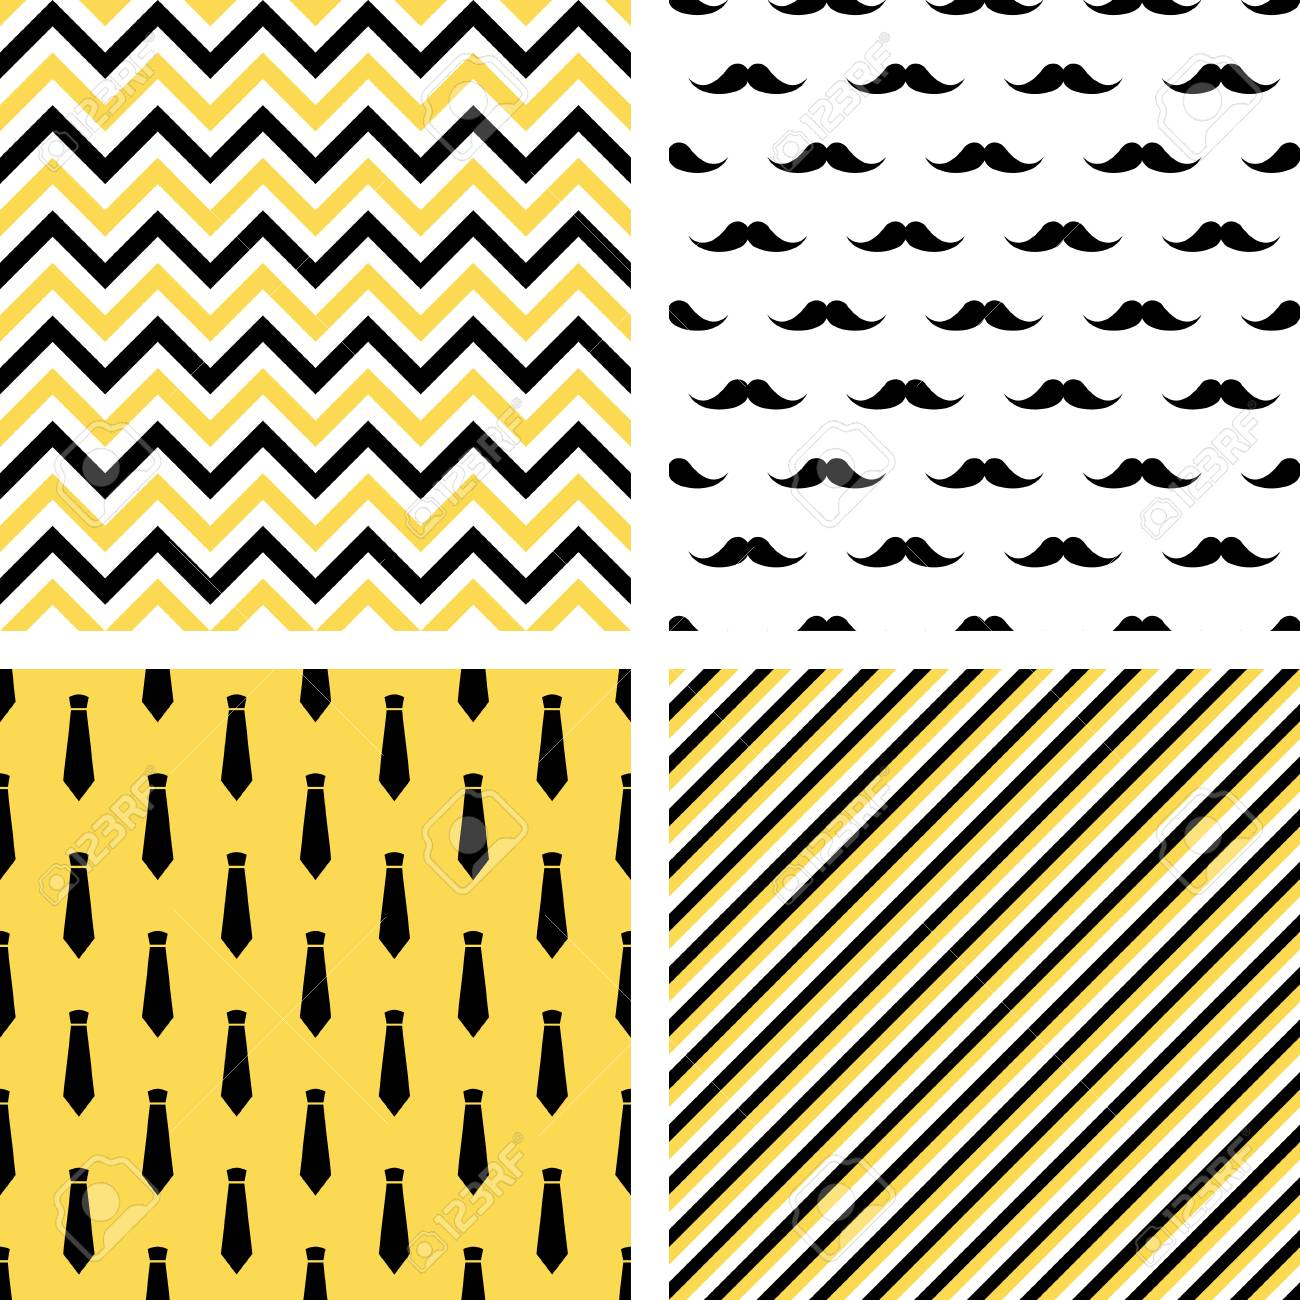 graphic relating to Printable Patterns named Fixed of printable vector seamless gentleman behaviors. Mustaches, neckties,..